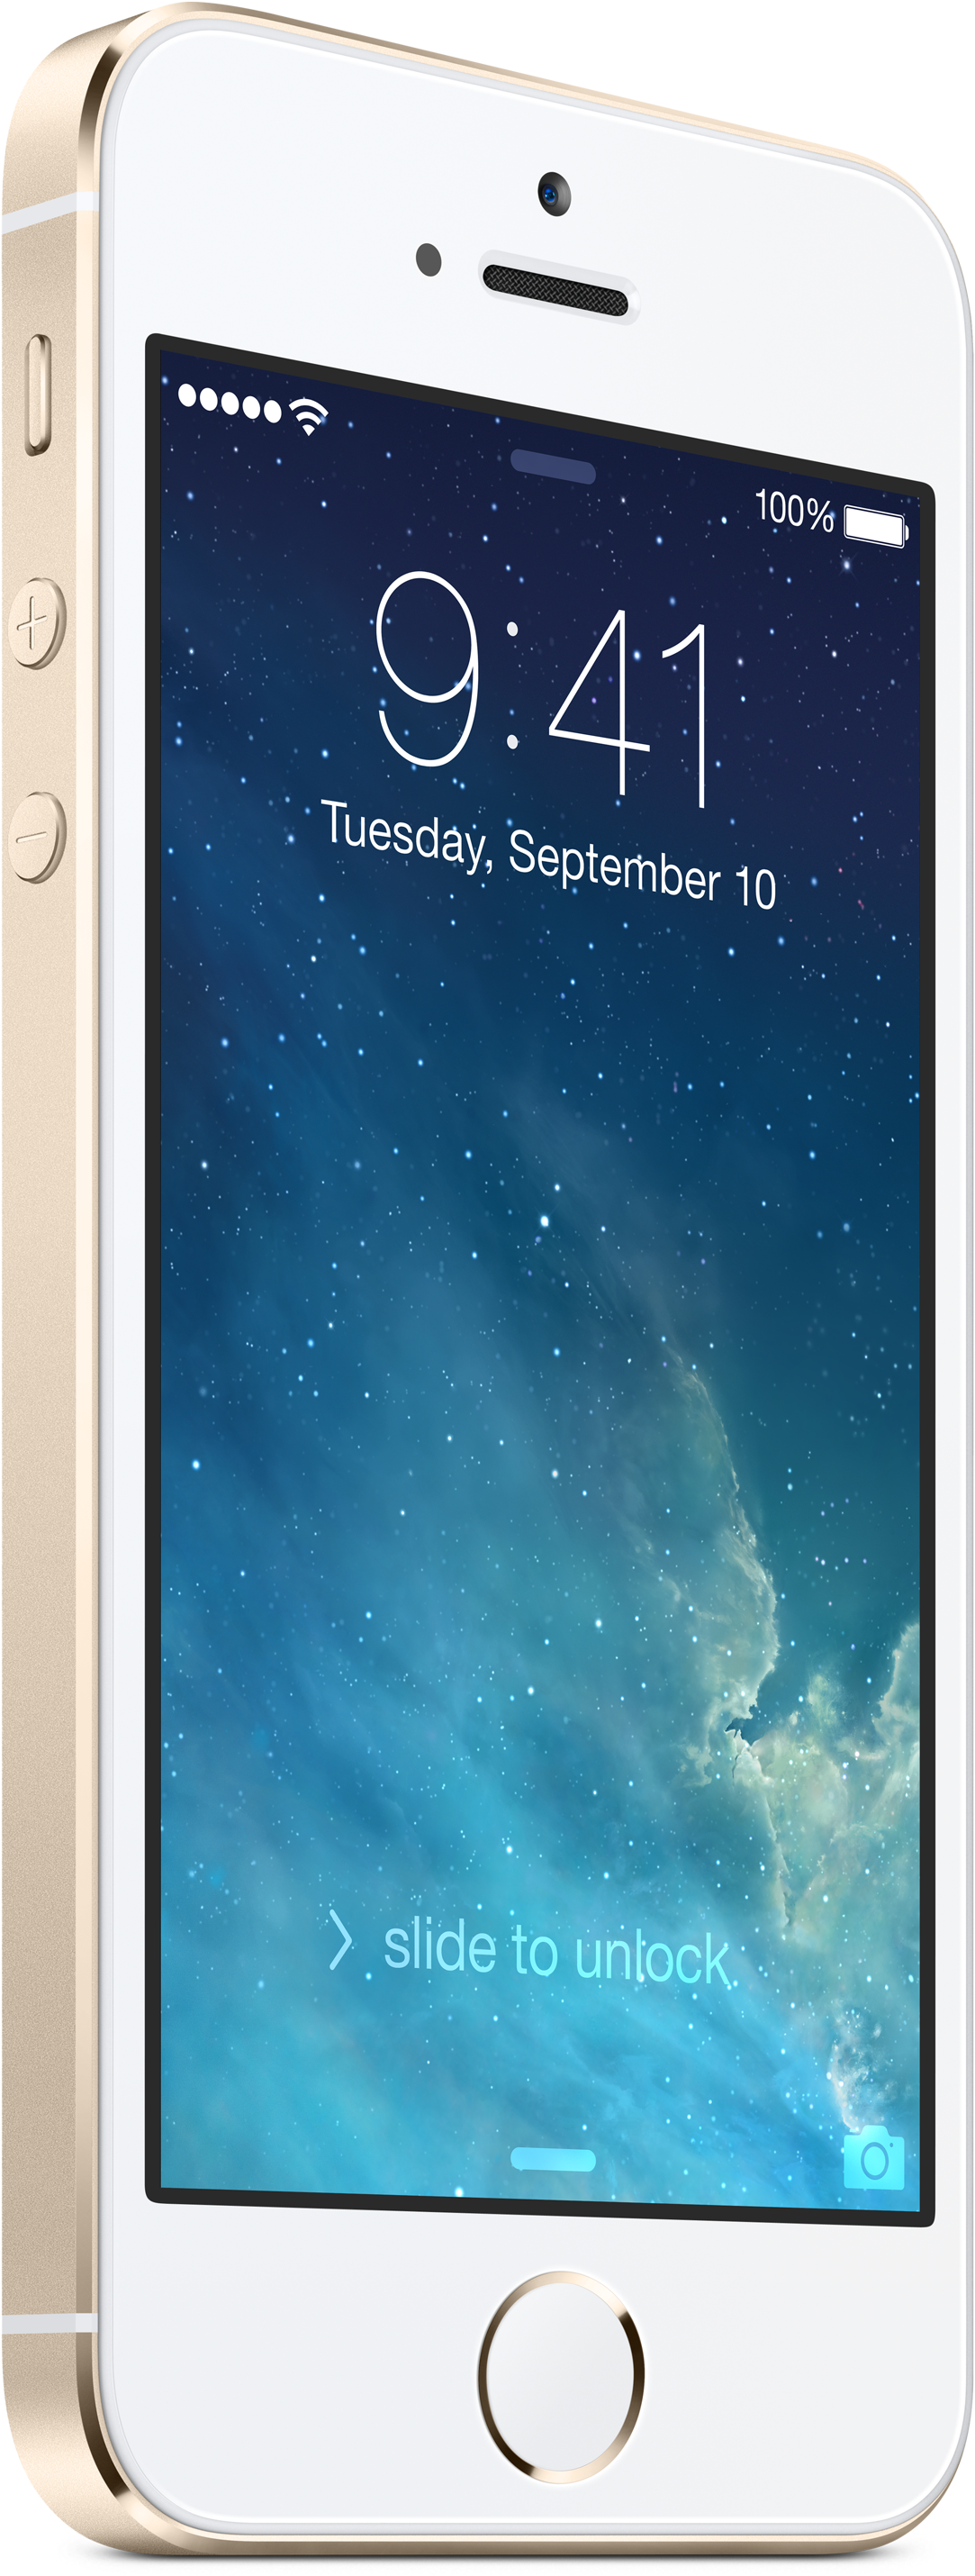 Full gold iPhone 5s standing